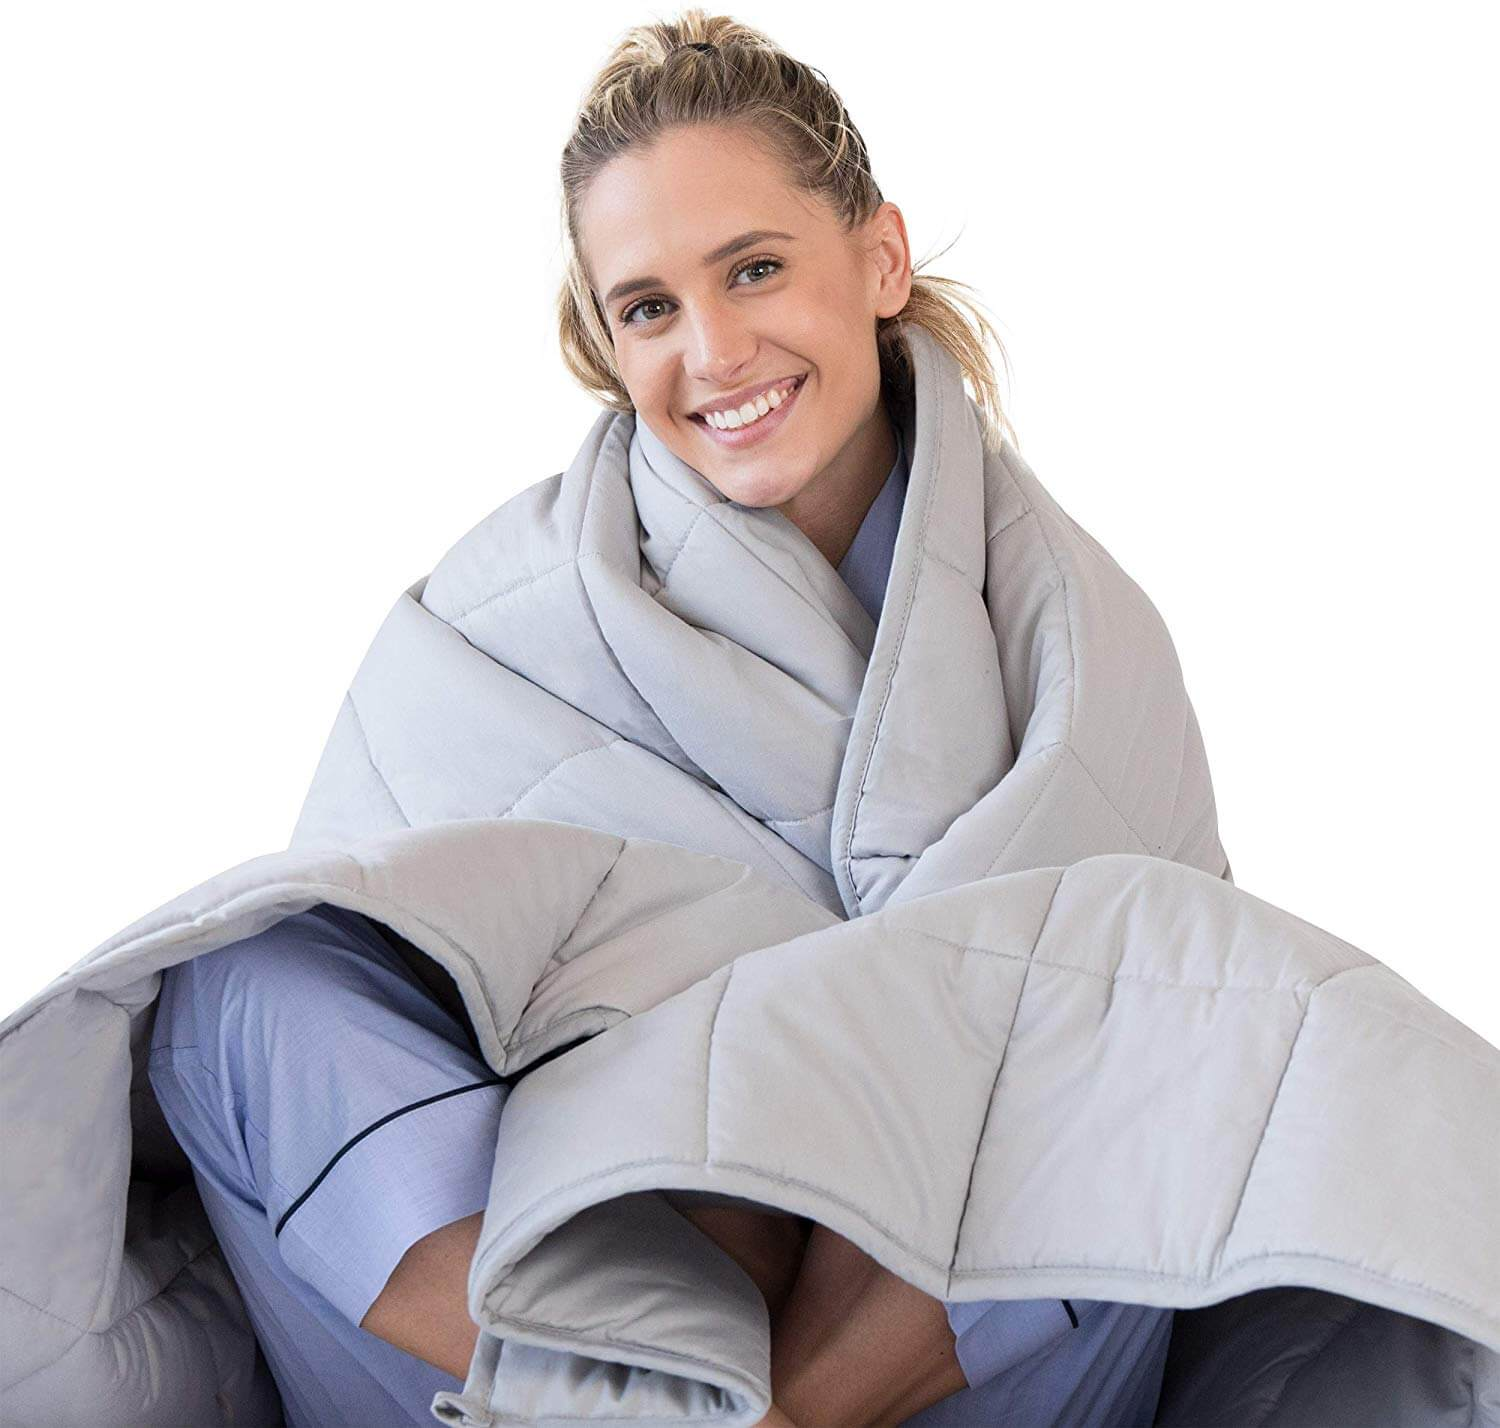 A young blond woman sits under weighted blanket